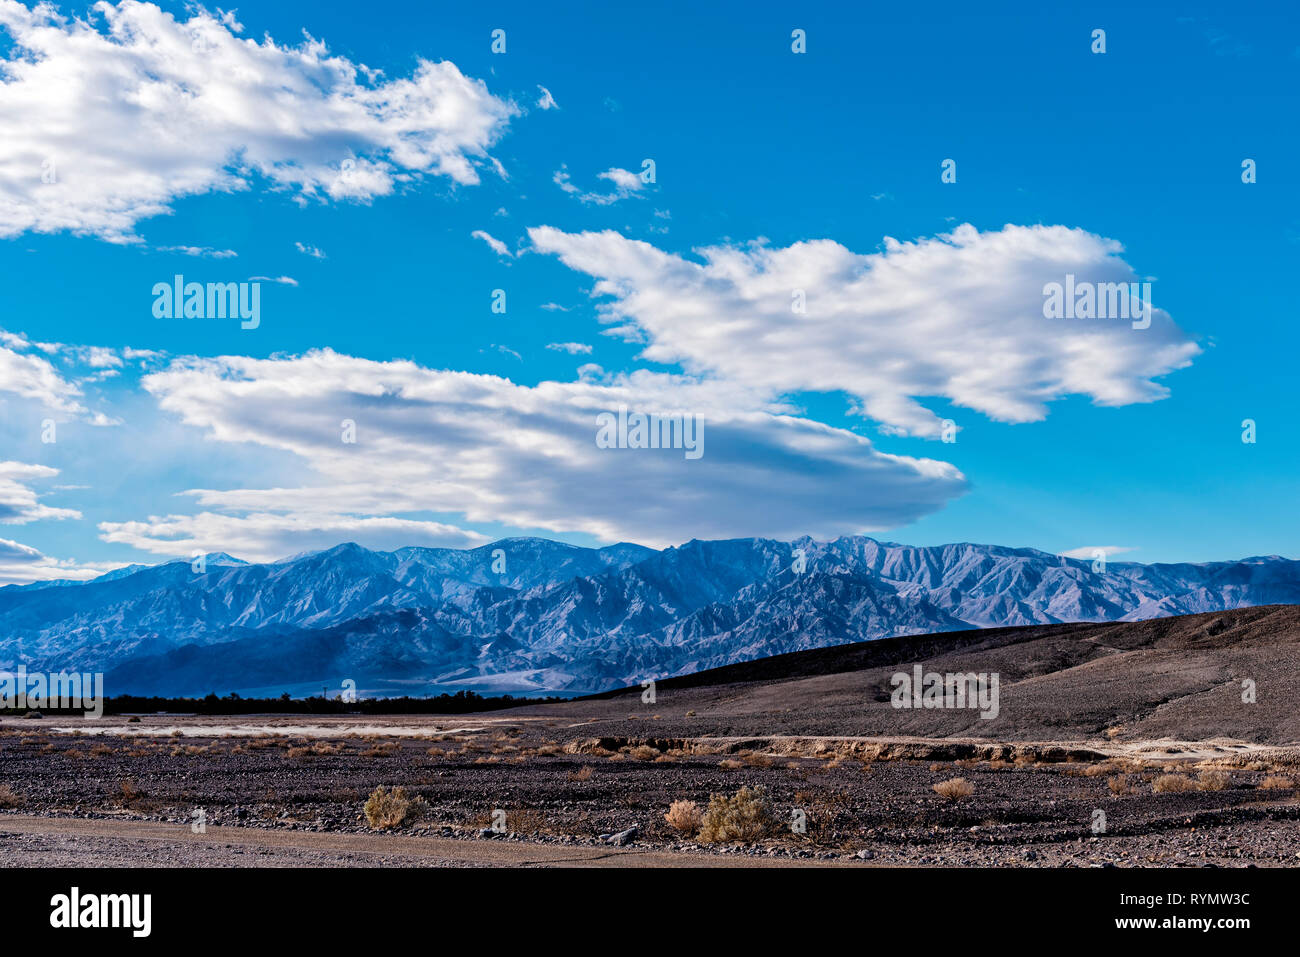 Barren desert landscape with sparse vegetation and blue mountains beyond under bright blue skies with white fluffy clouds. - Stock Image